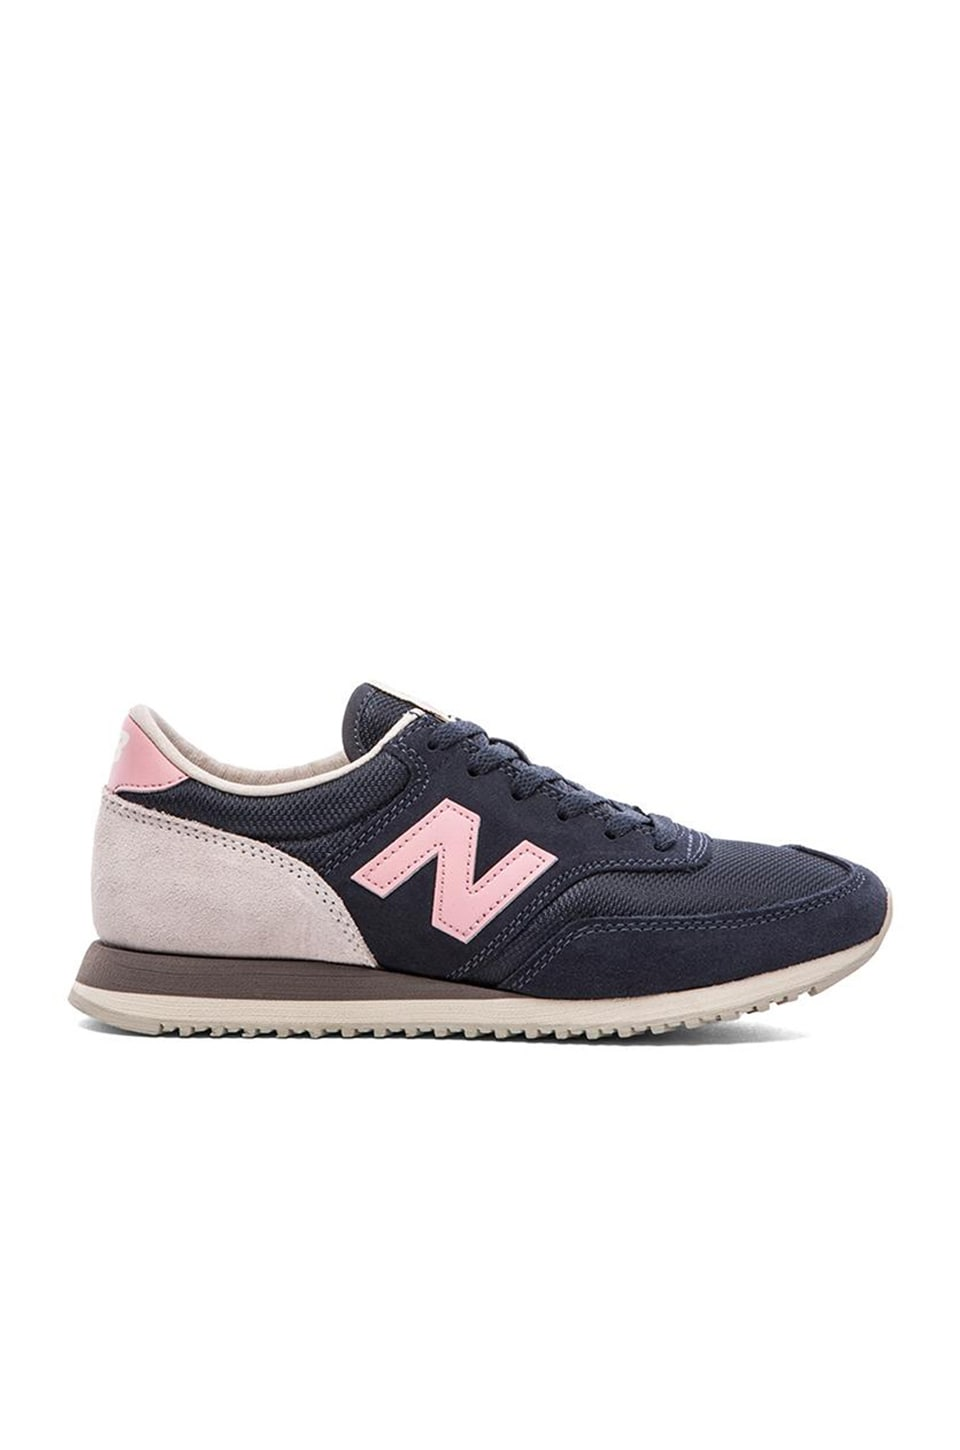 New Balance Classics '70s Running Collection Sneaker in Navy & Pink